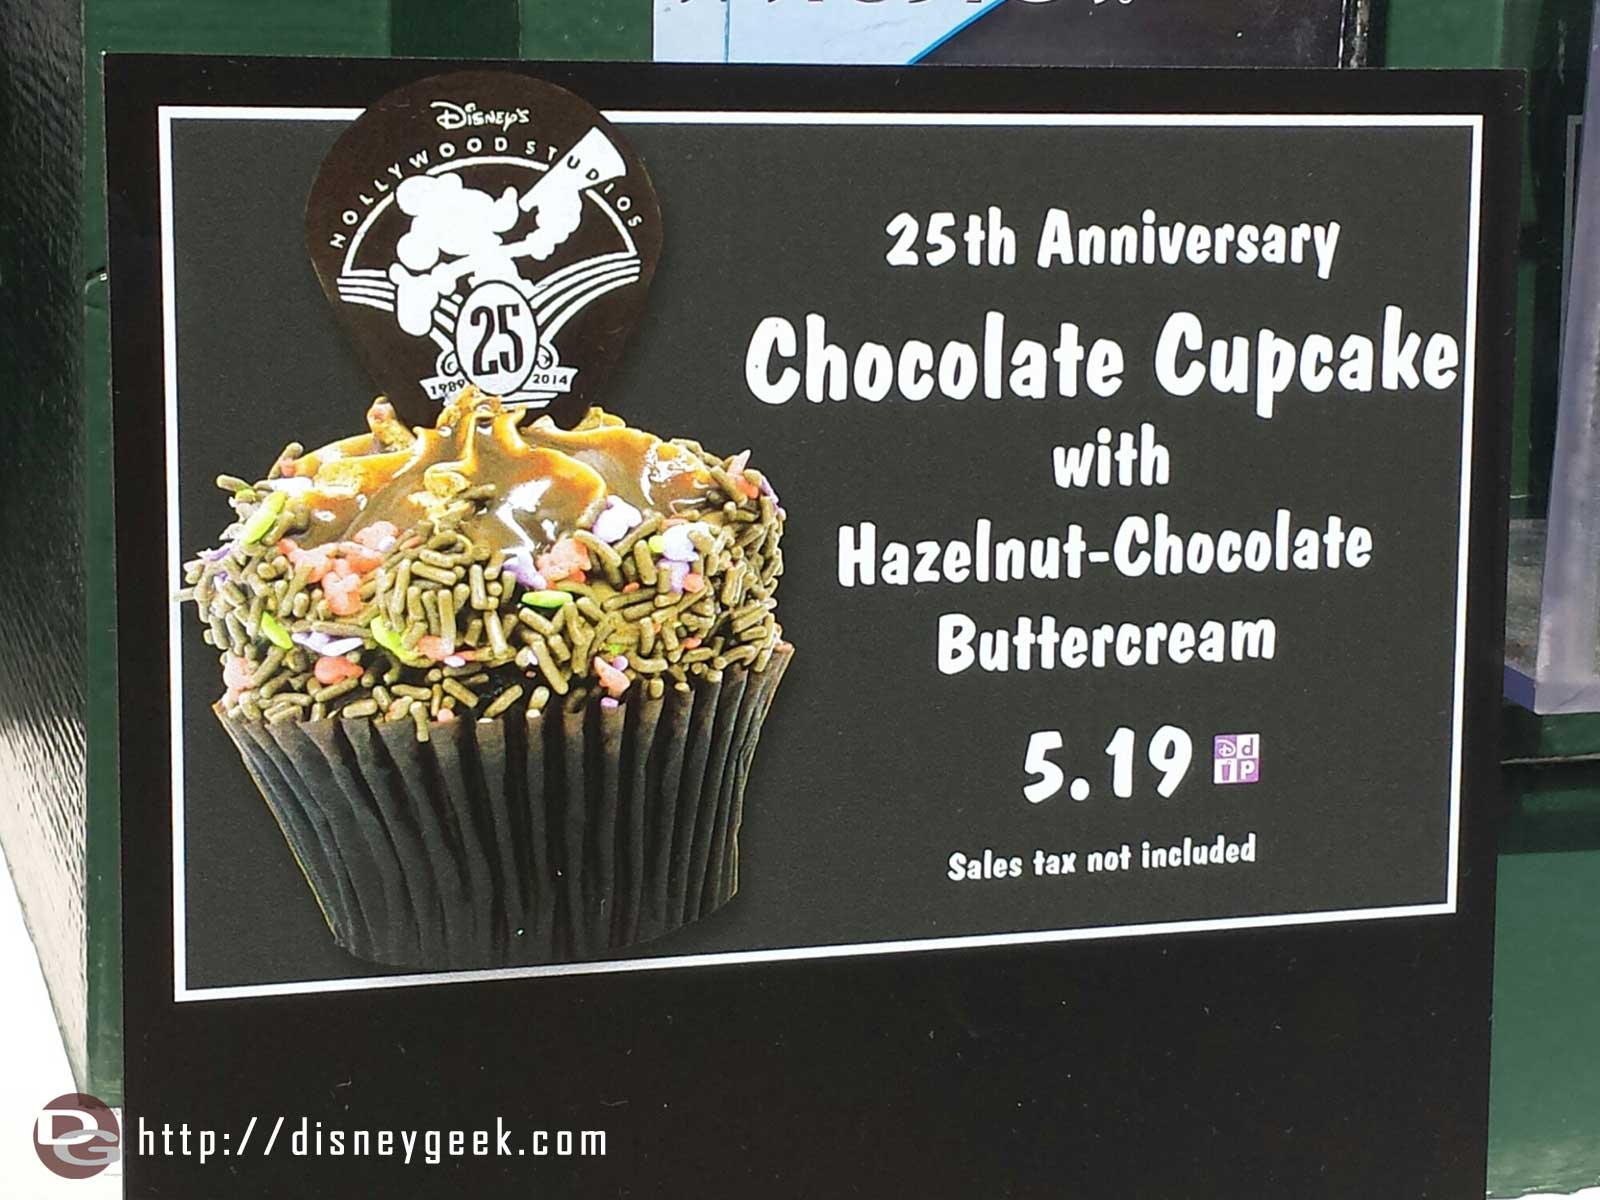 25th Anniversary Cupcake at Disney's Hollywood Studios